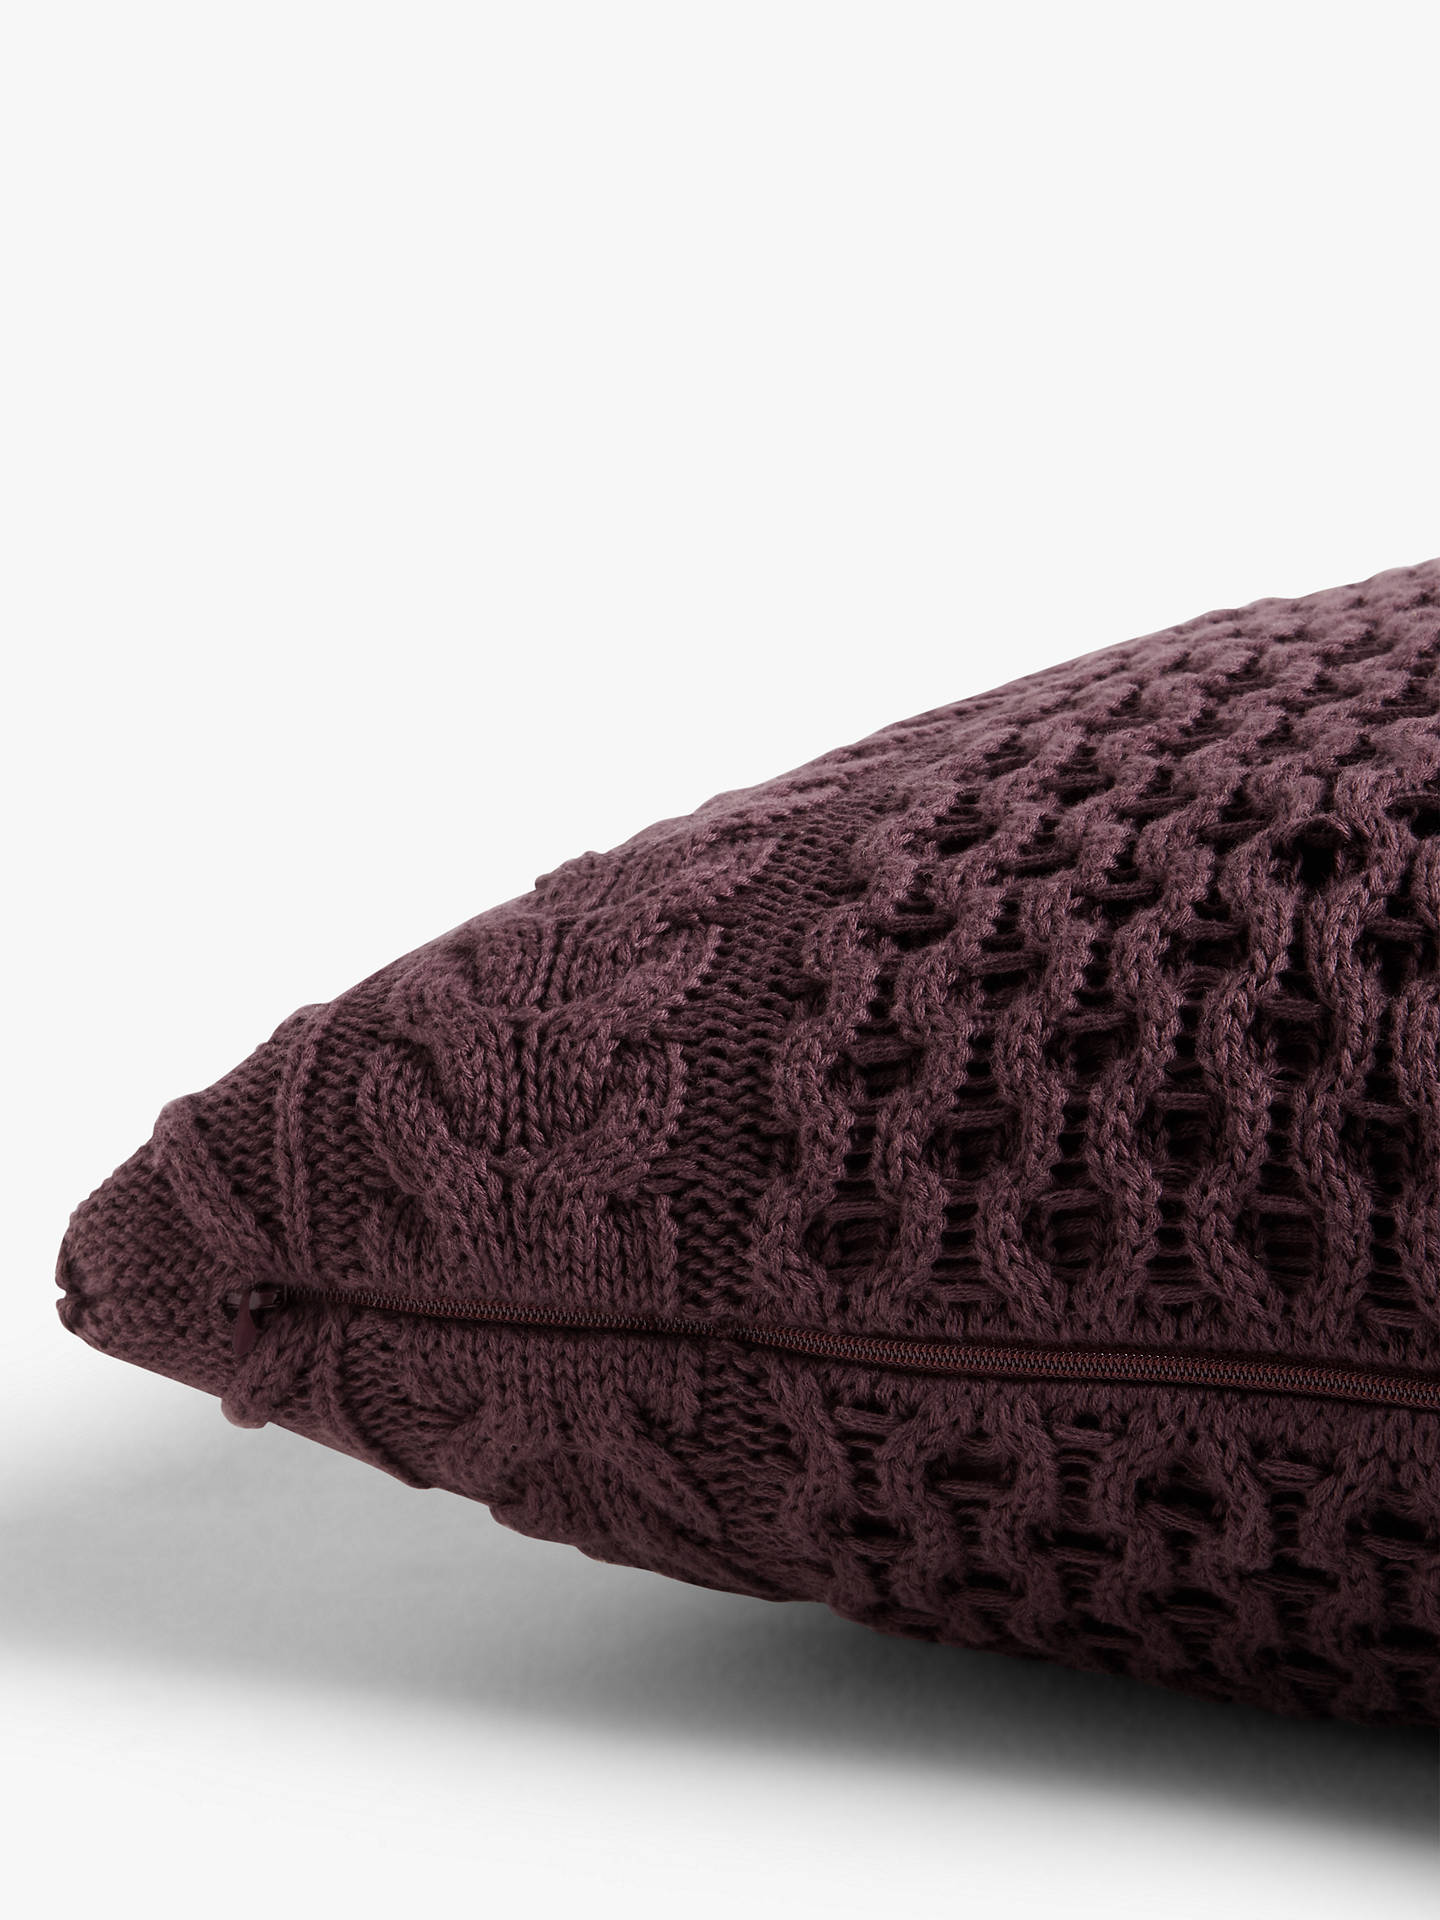 Buy John Lewis & Partners Organic Cotton Knit Cushion, Plum Online at johnlewis.com